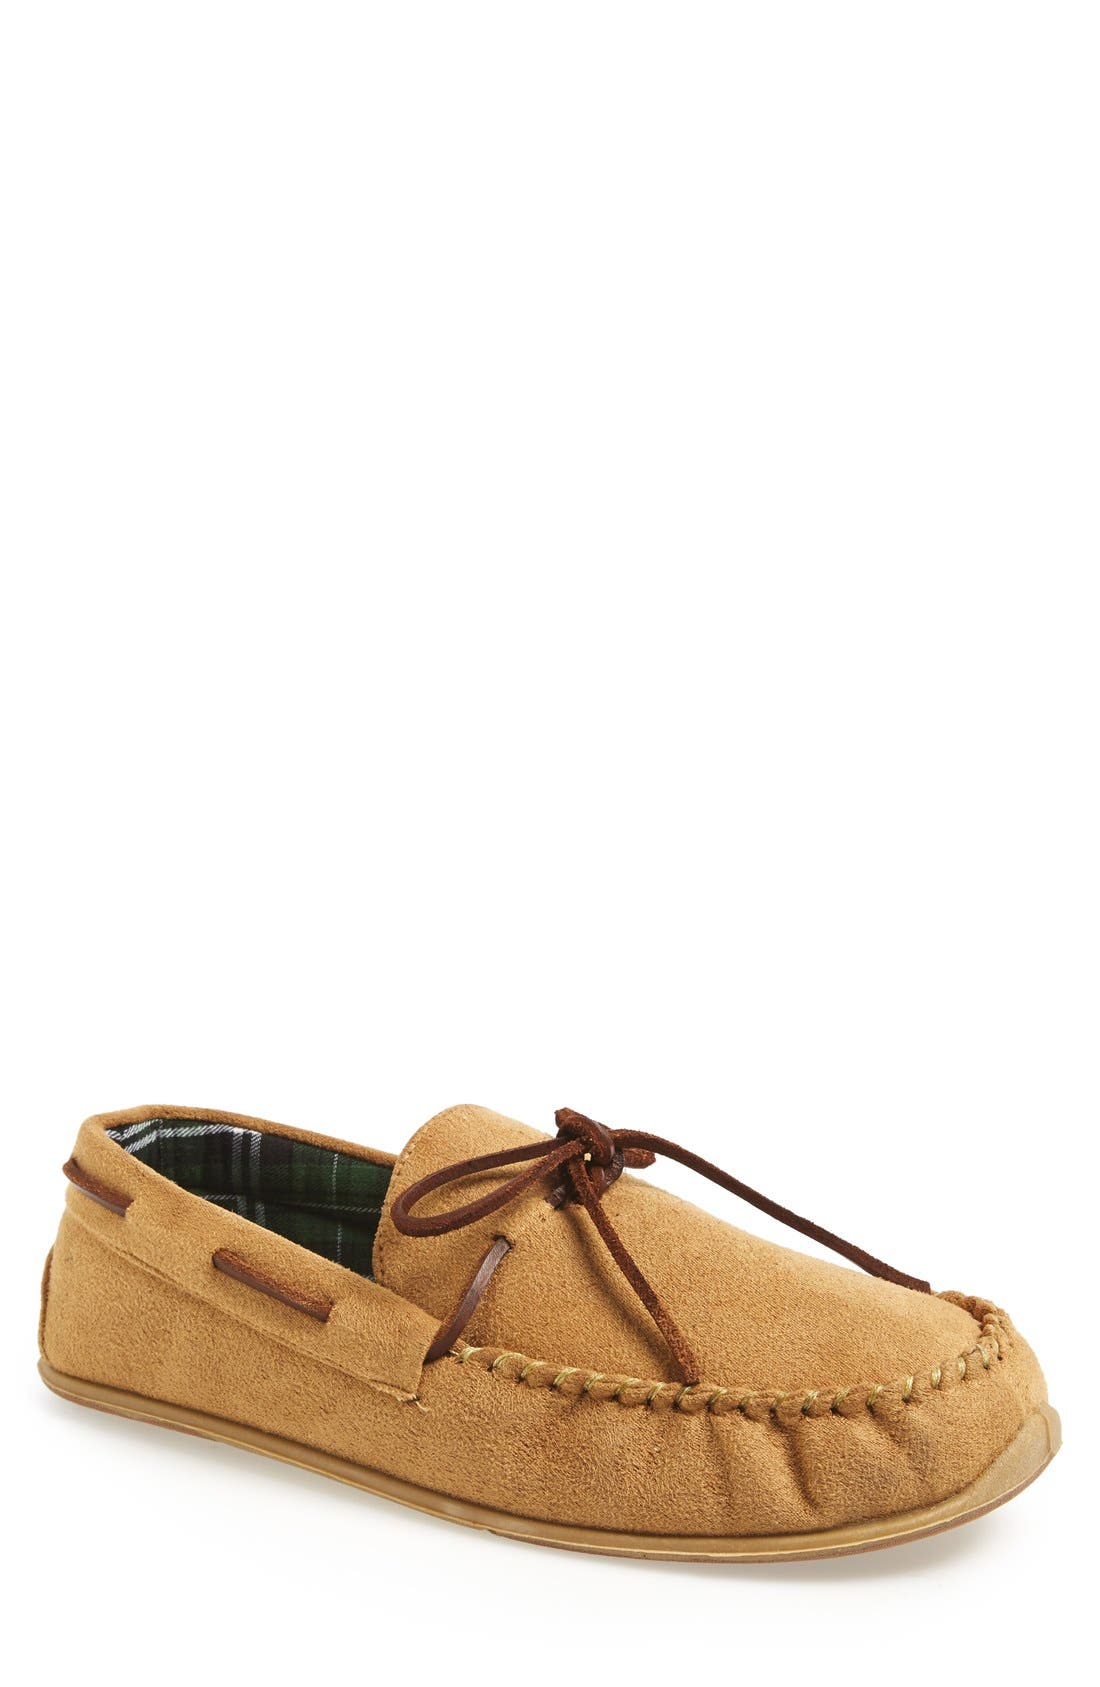 'Fudd' Slipper,                         Main,                         color, 210